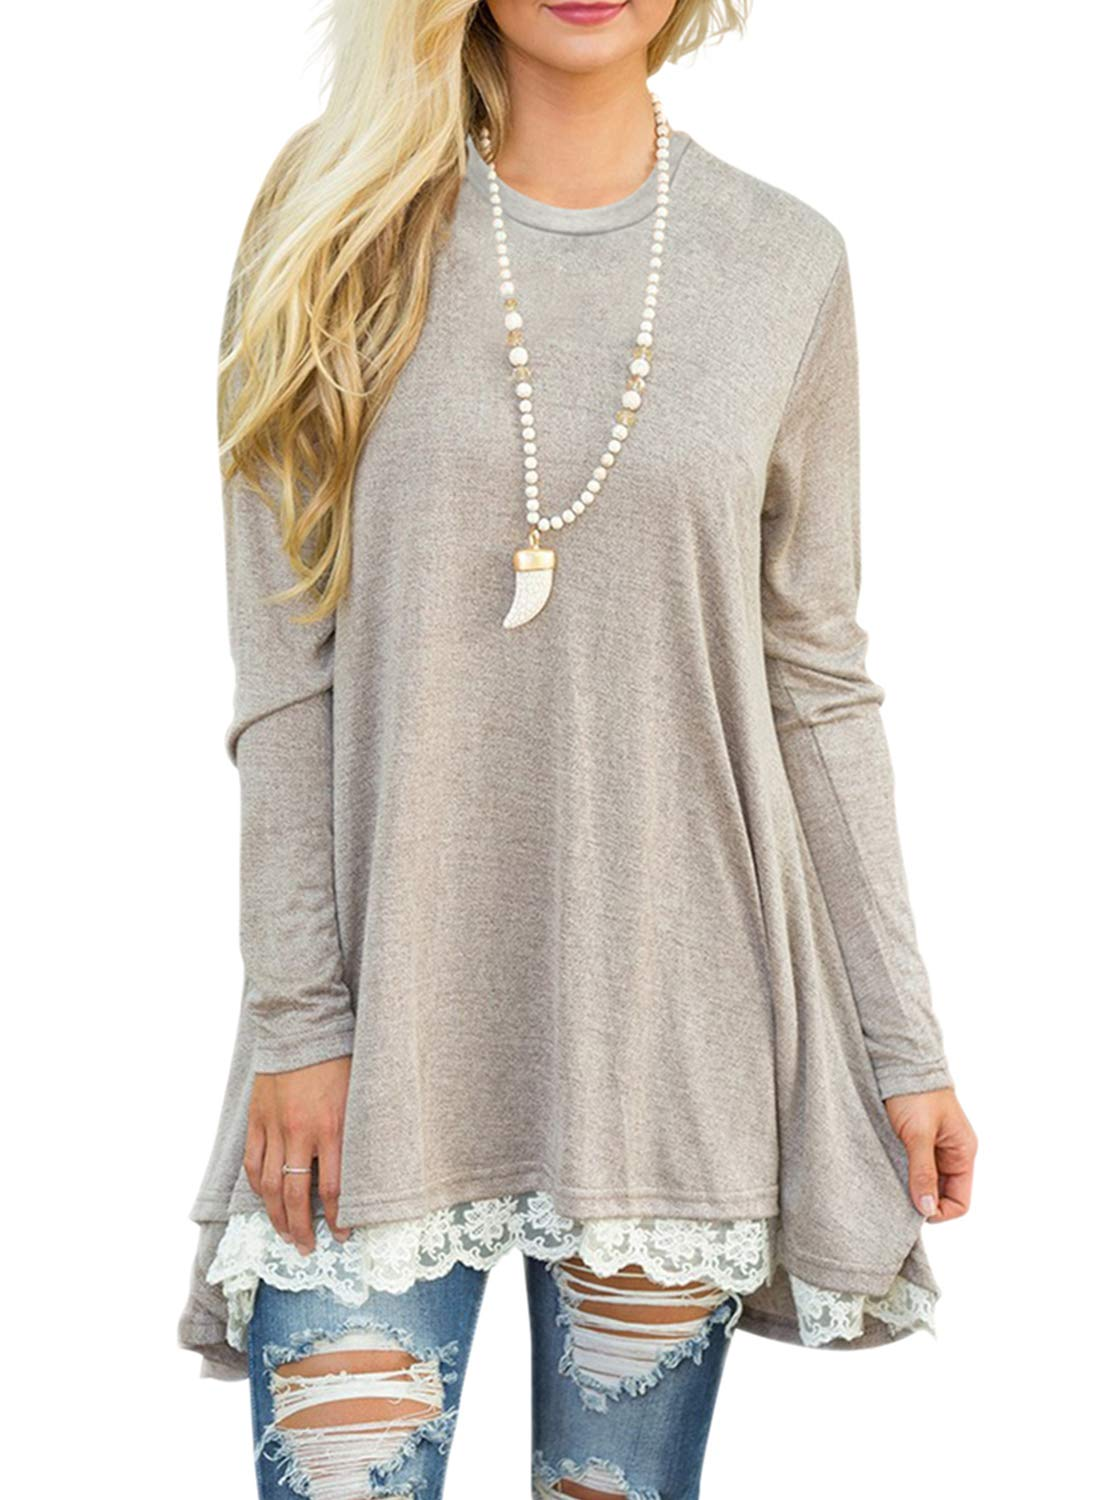 Plus Size Clothing - Women Lace Long Sleeve Tunic Top Blouse